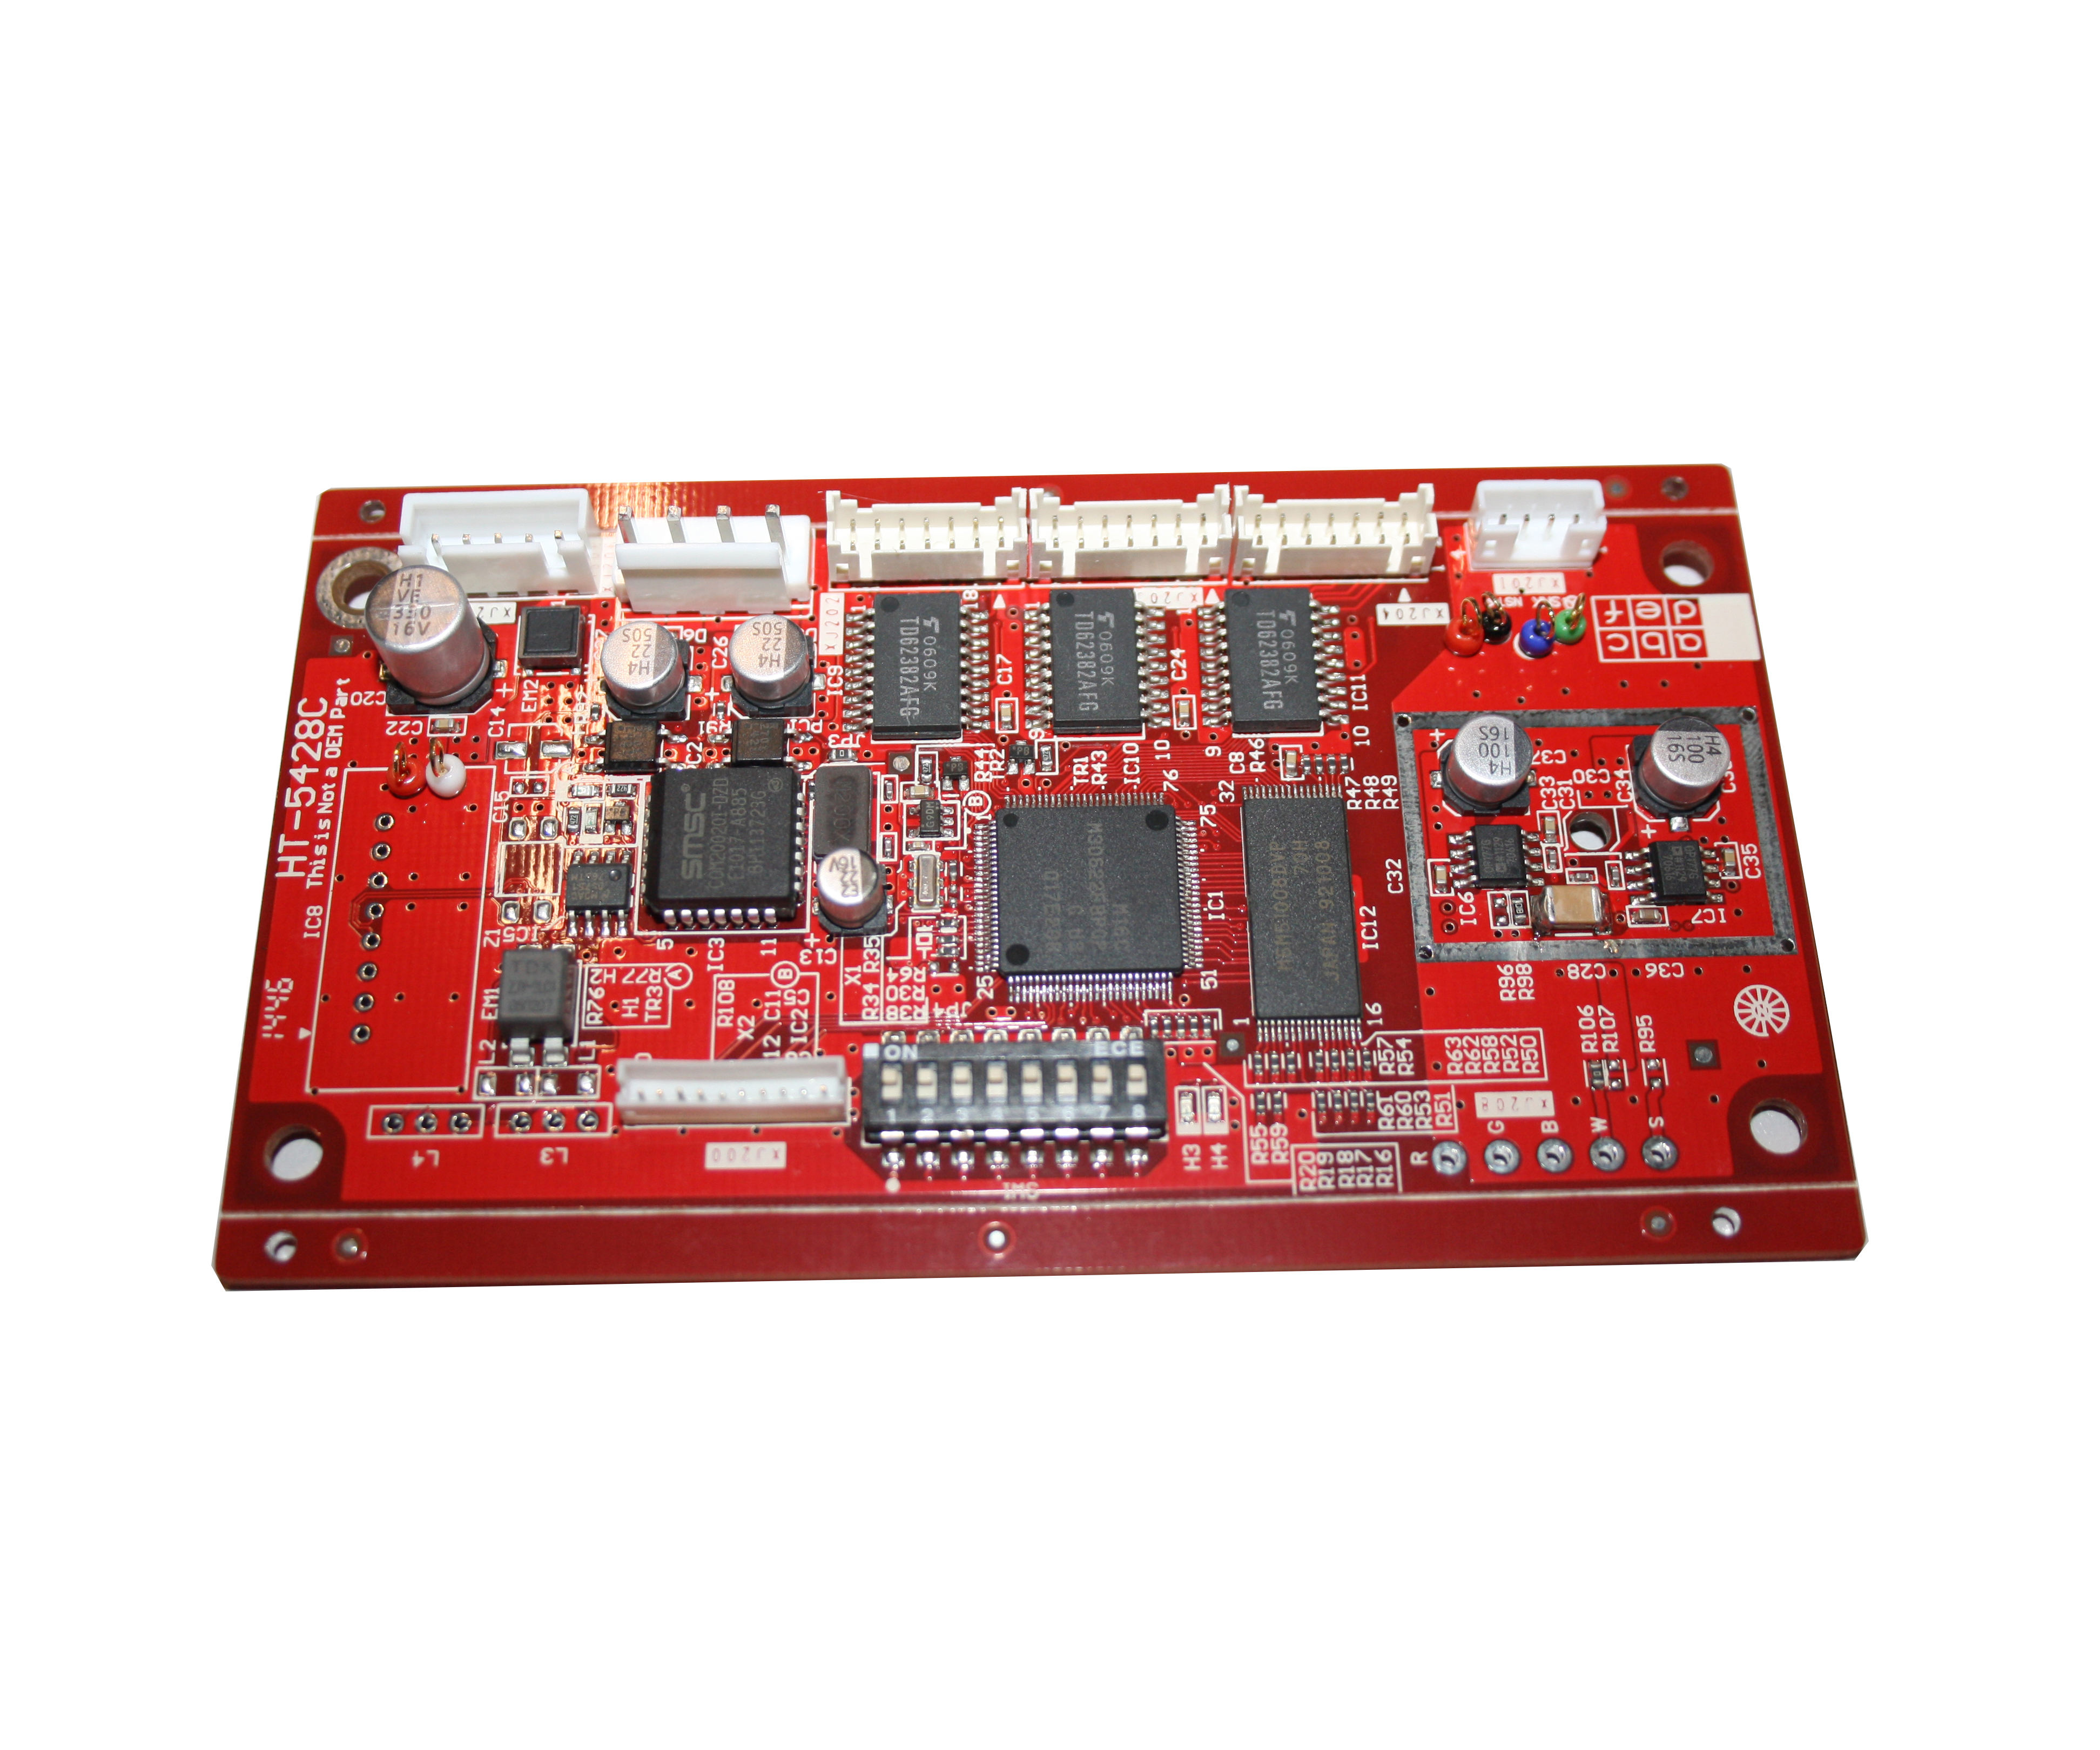 Superio Quality Wireless Sensor OEM/ ODM PCBA Prototyping PCB Assembled Board Supplier